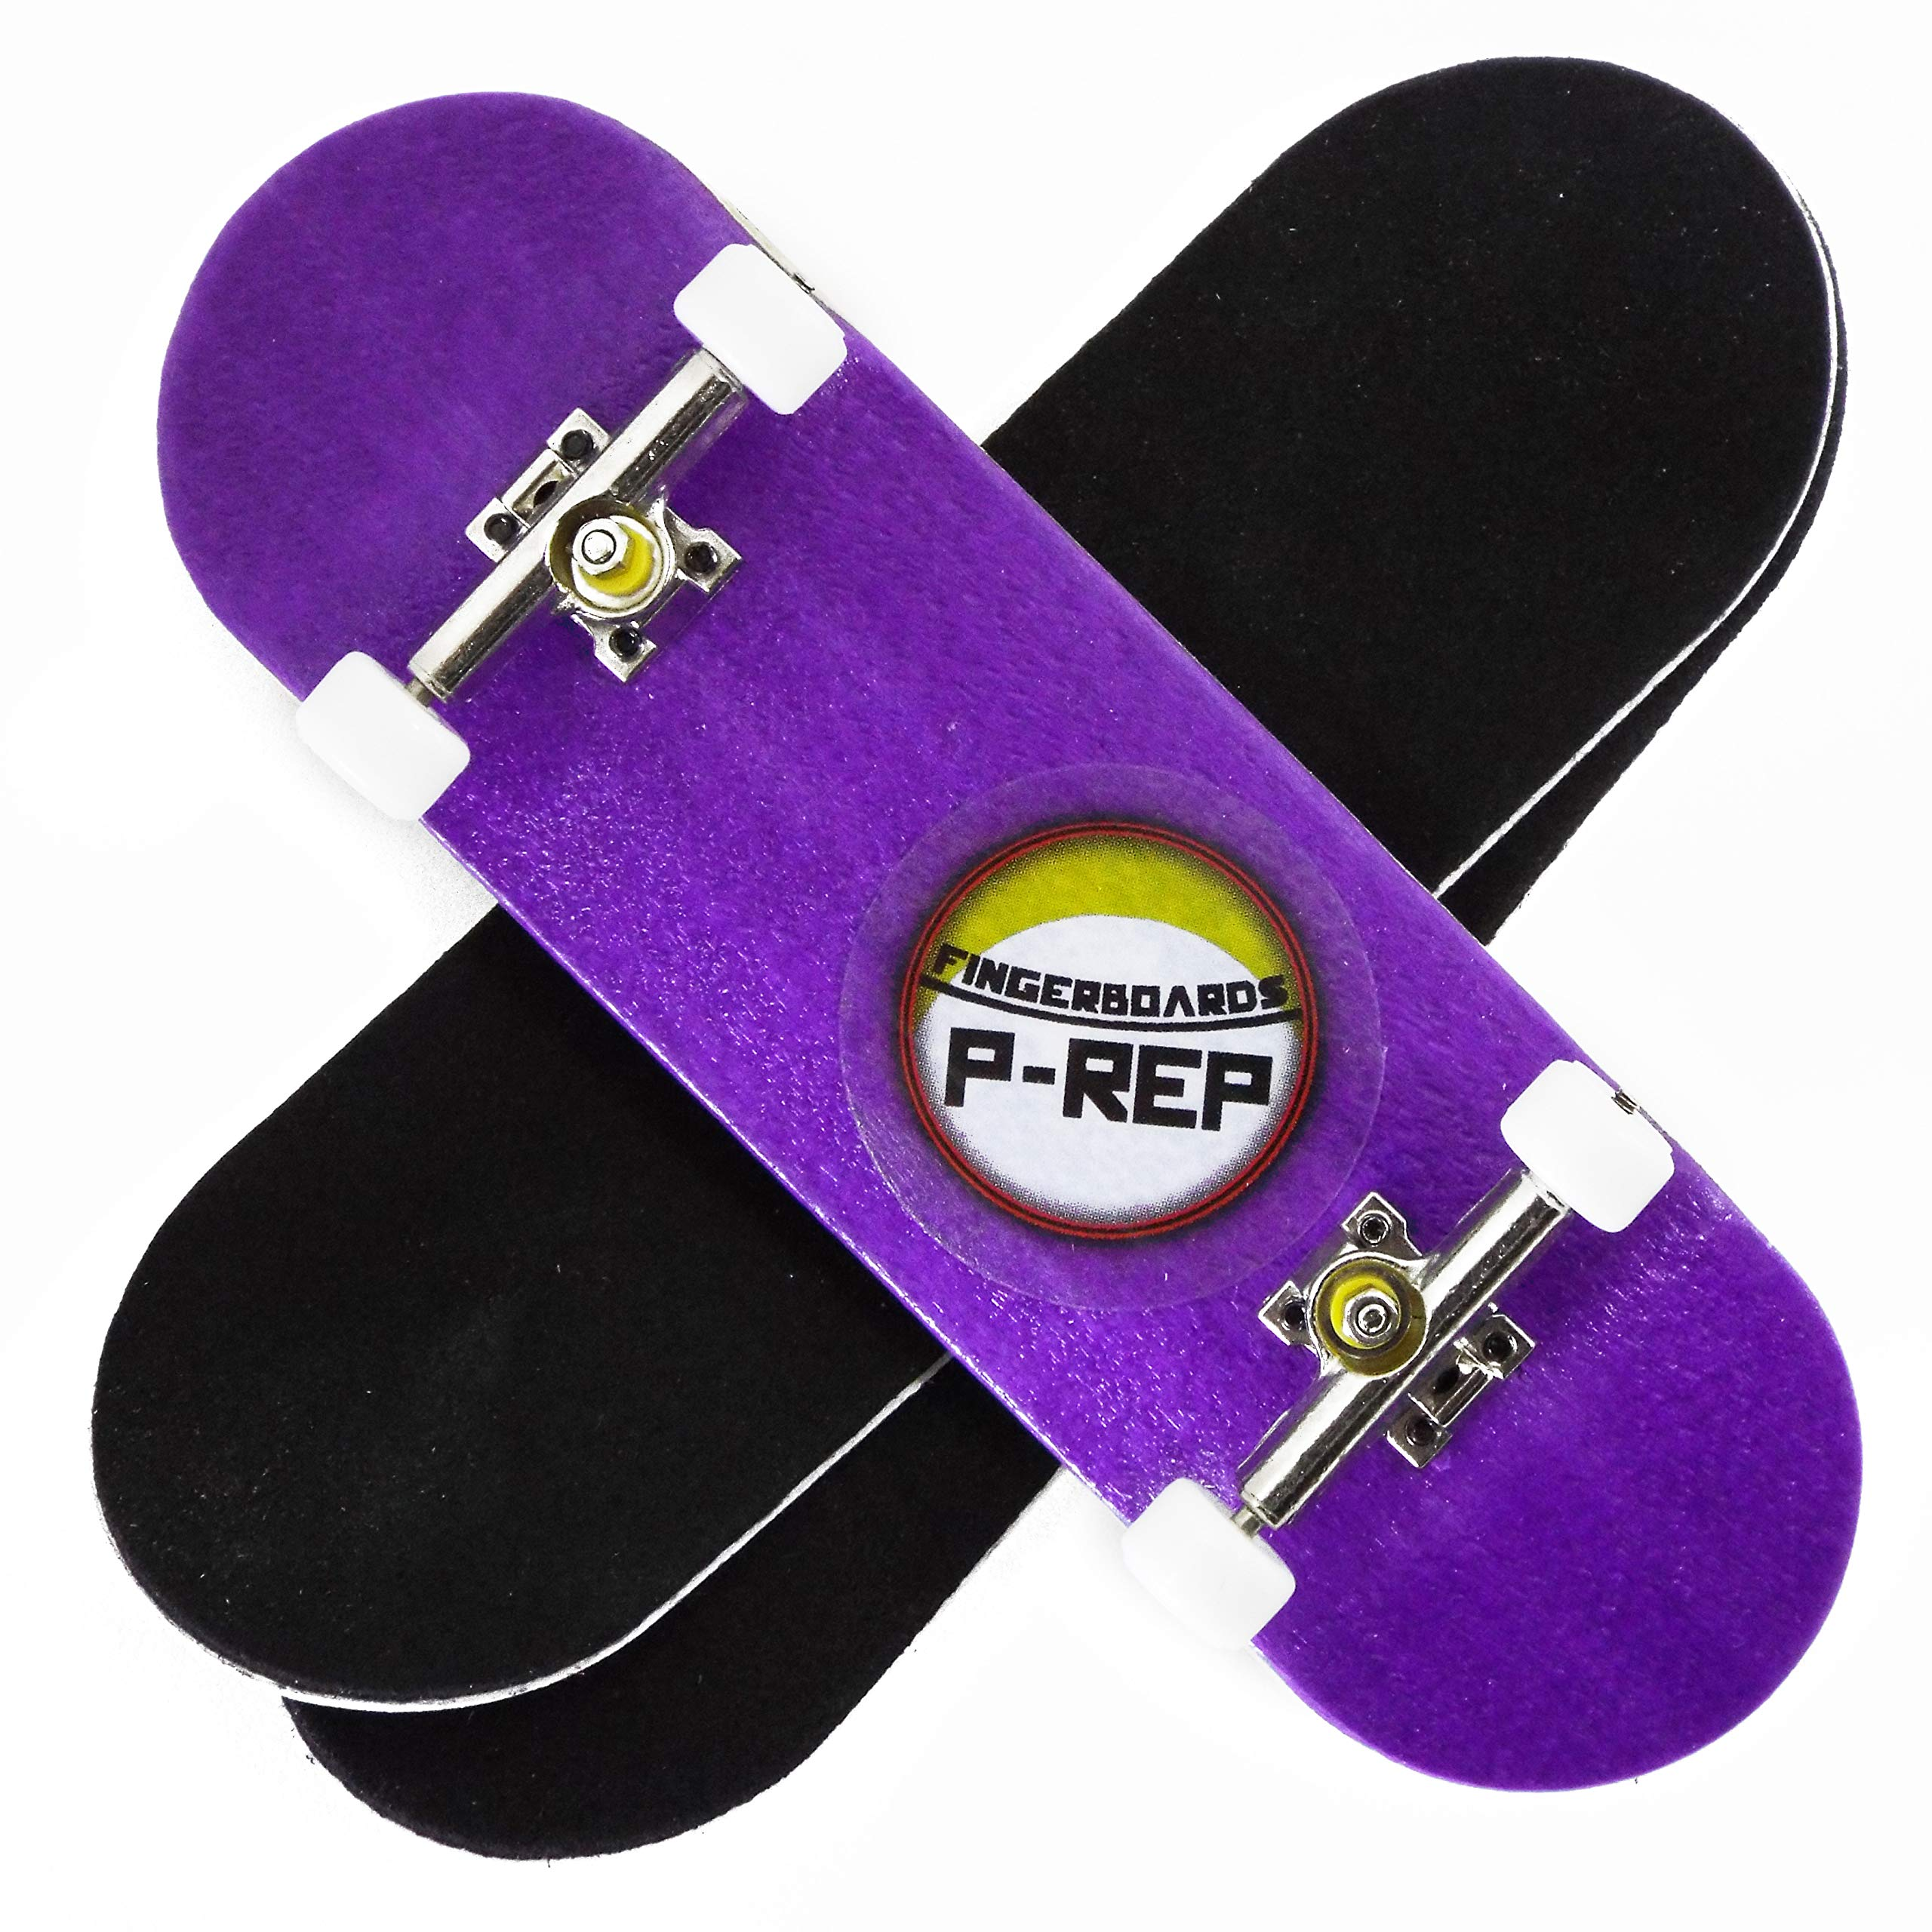 P-REP Starter Complete Wooden Fingerboard 30mm x 100mm (Purple)